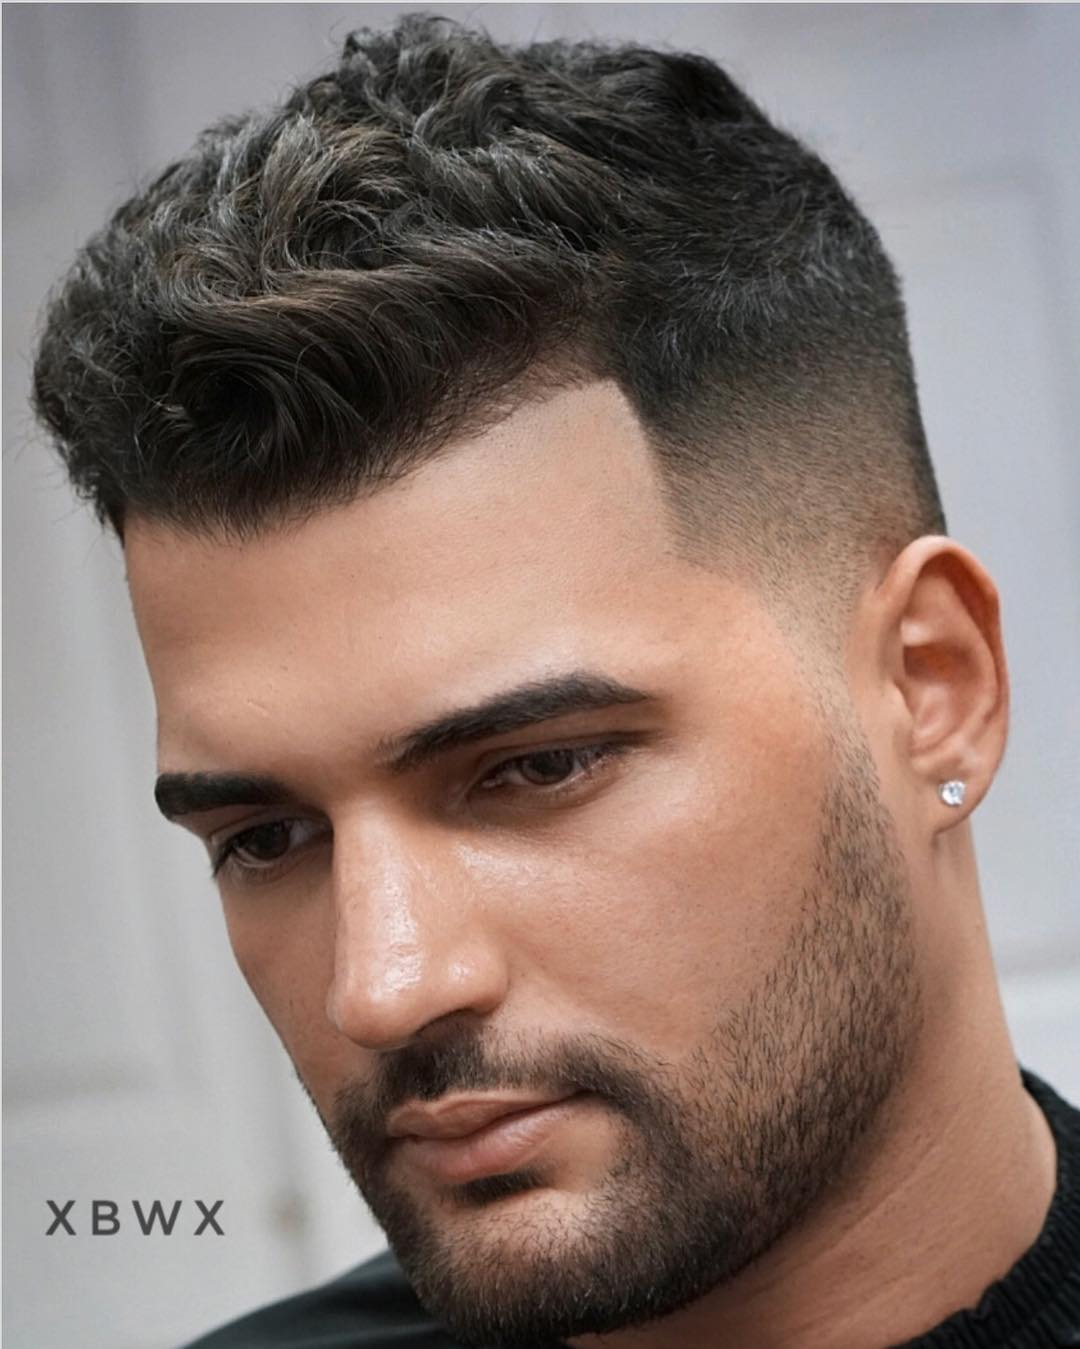 New Hairstyles For Men 2019 Men S Hairstyle Trends